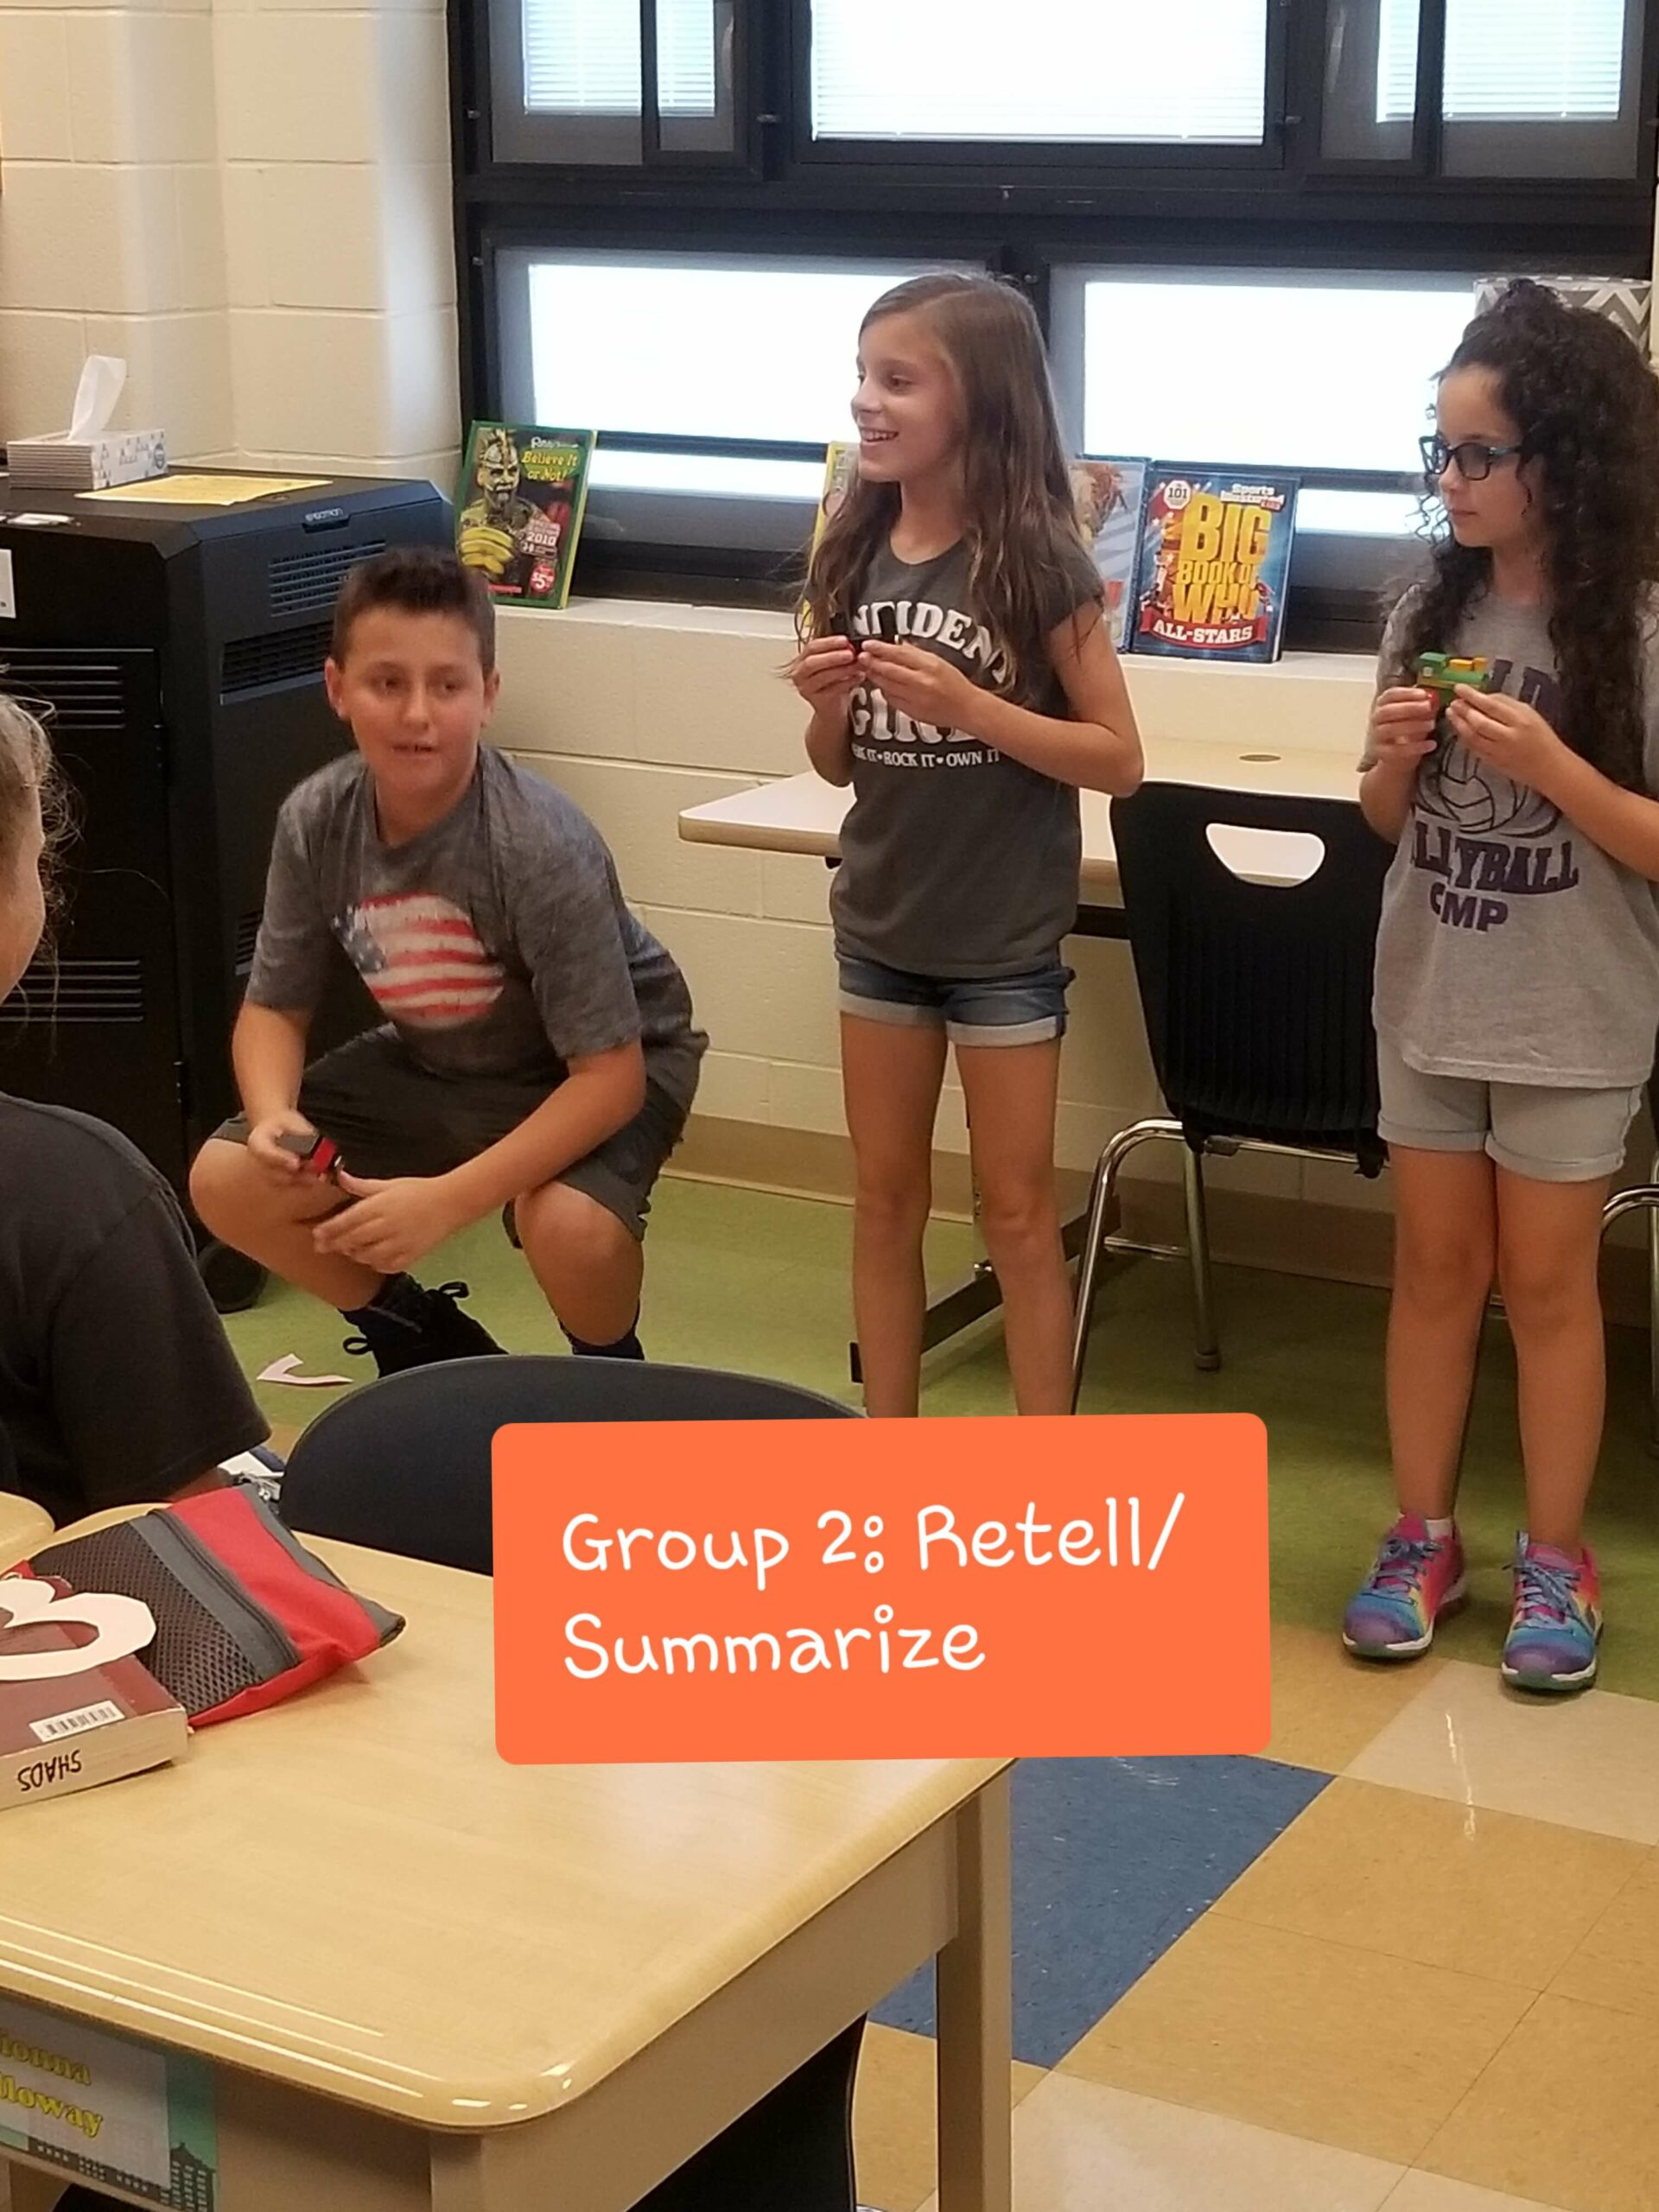 Erica Shadley Classroom: Comprehension Strategy Small Group Retell/Summarize Ideas 1